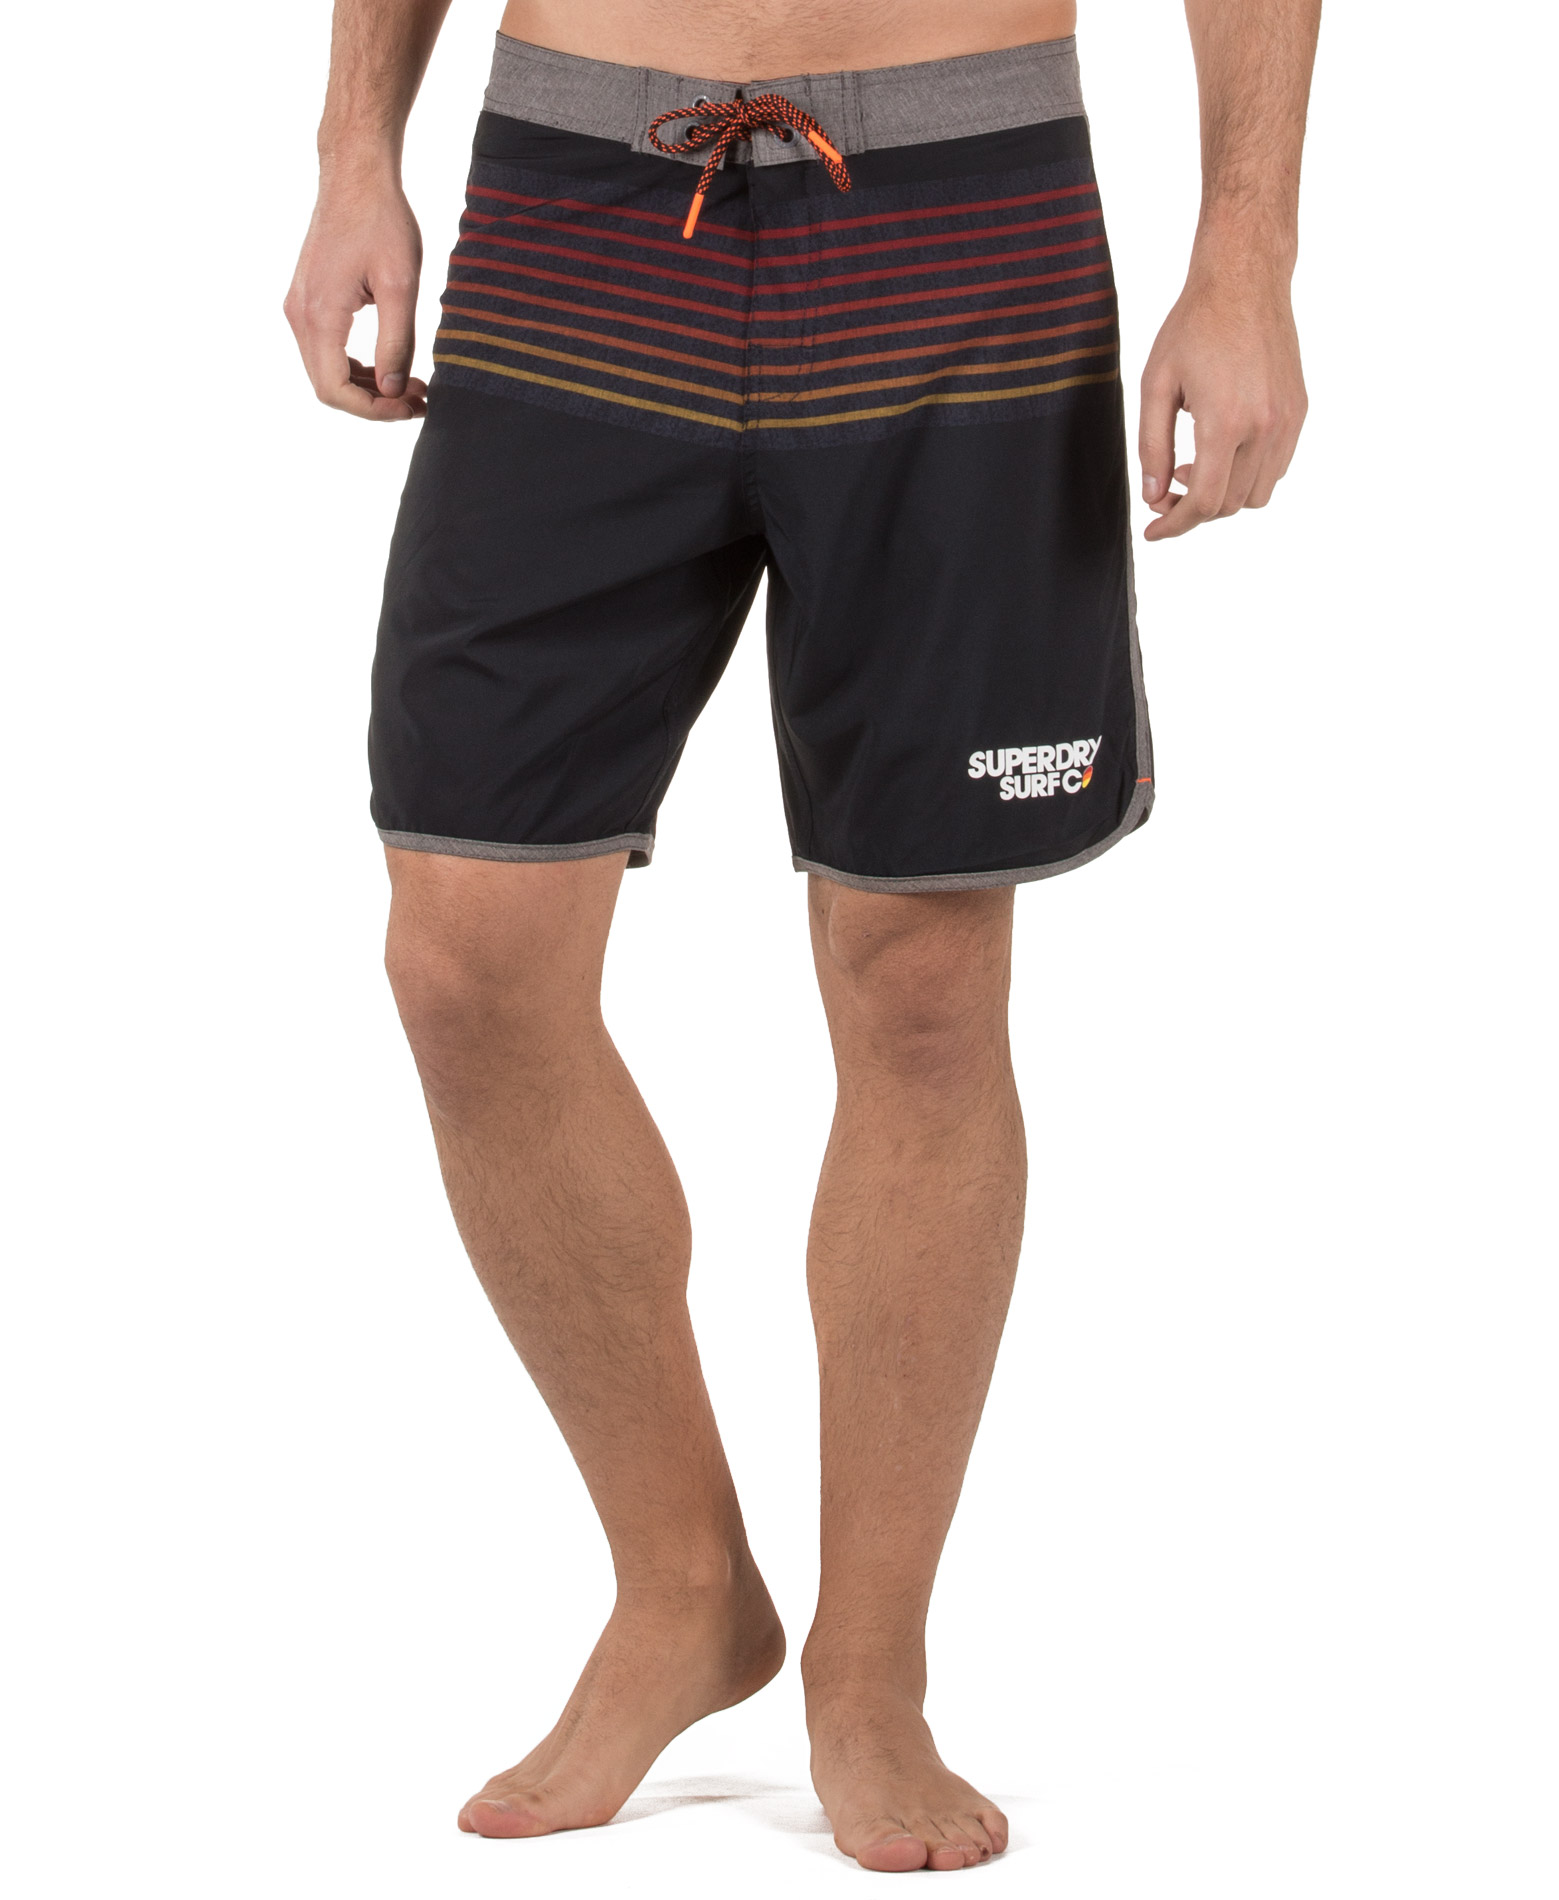 SUPERDRY D2 UPSTATE RETRO BOARDSHORT M30001HQ-49P Μπλέ